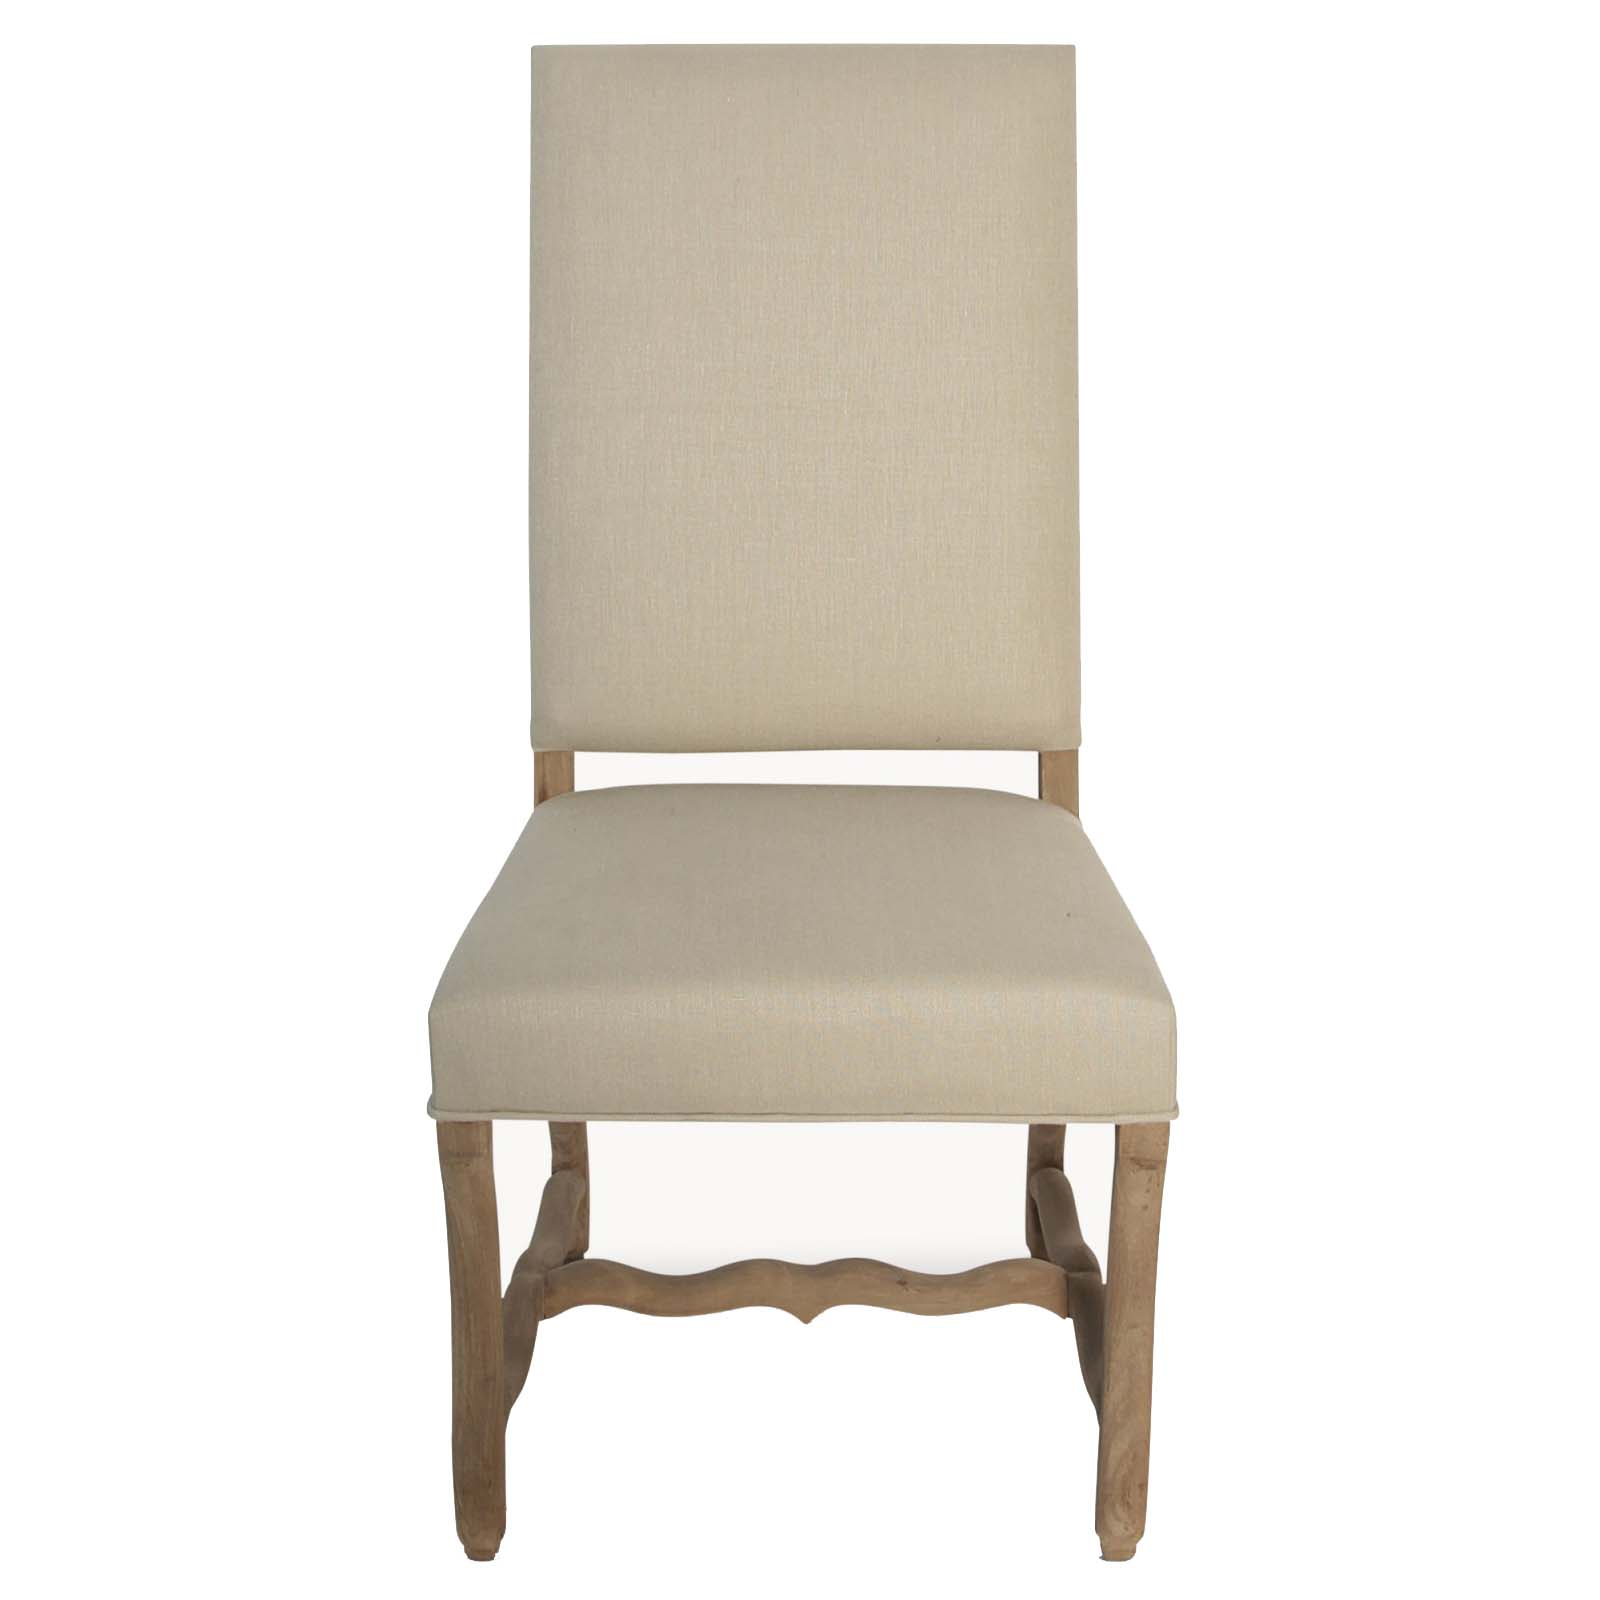 Woodstock Dining Chair 1